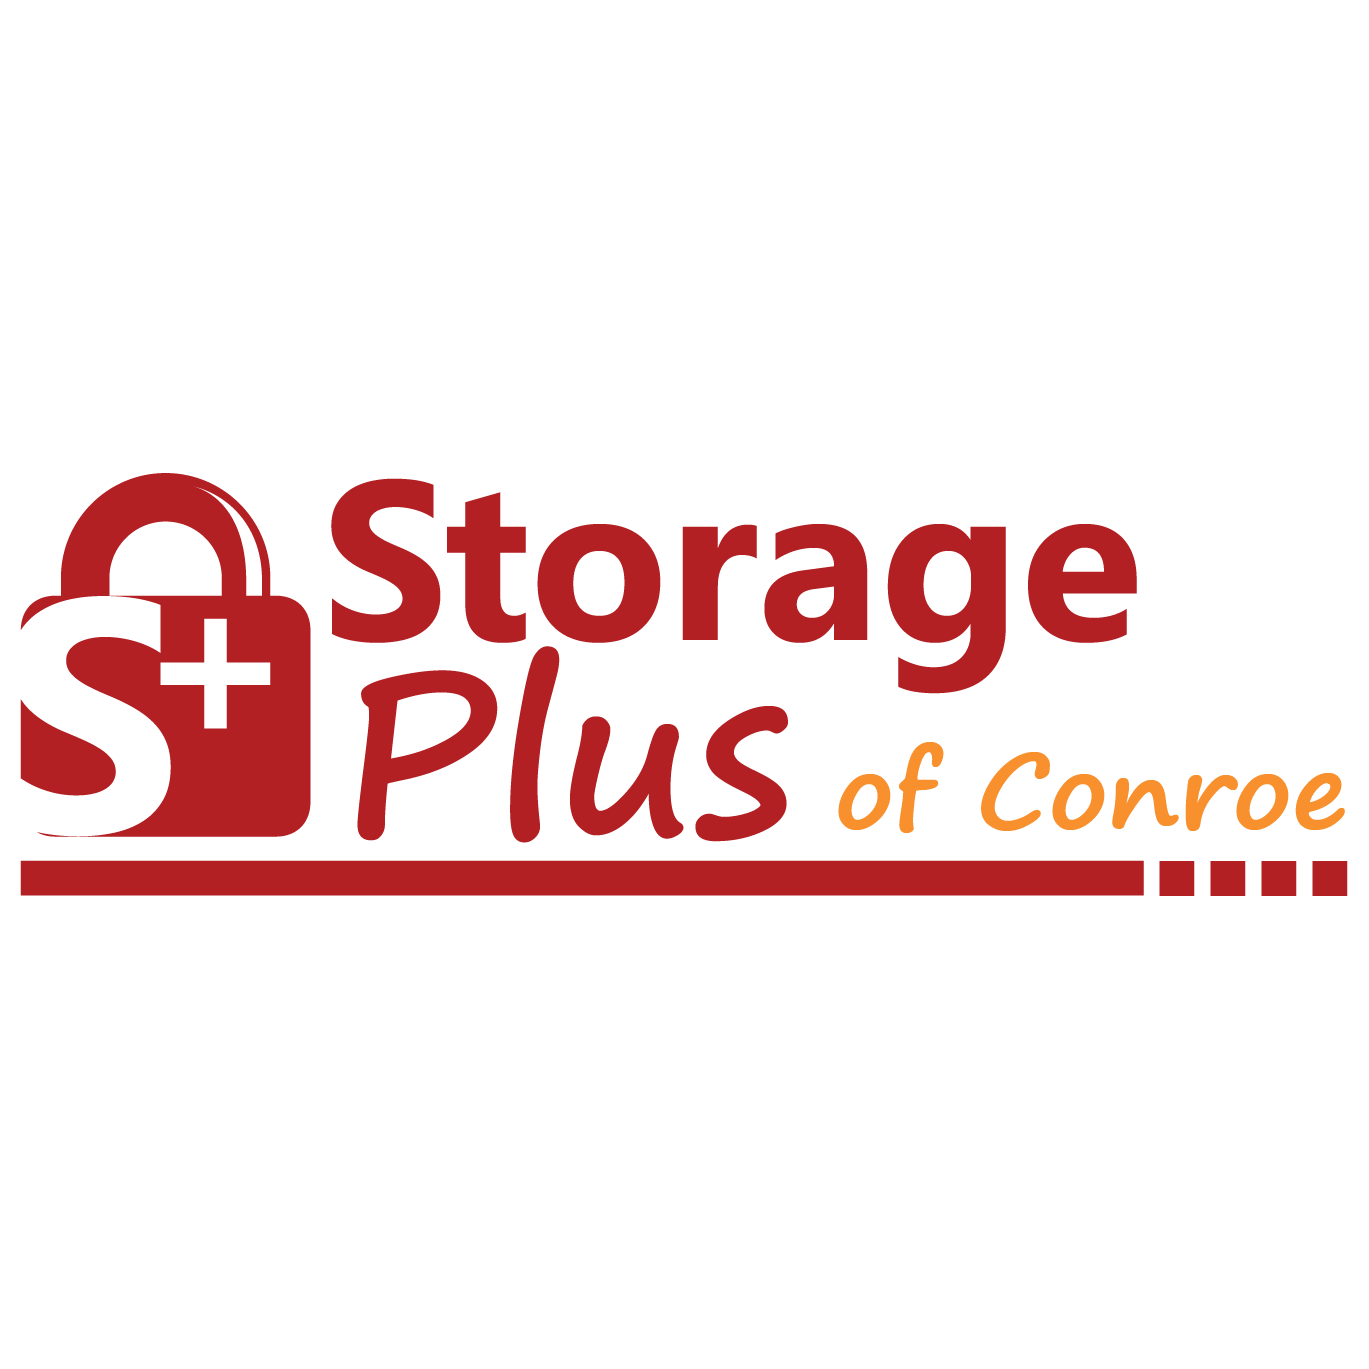 Storage Plus of Conroe